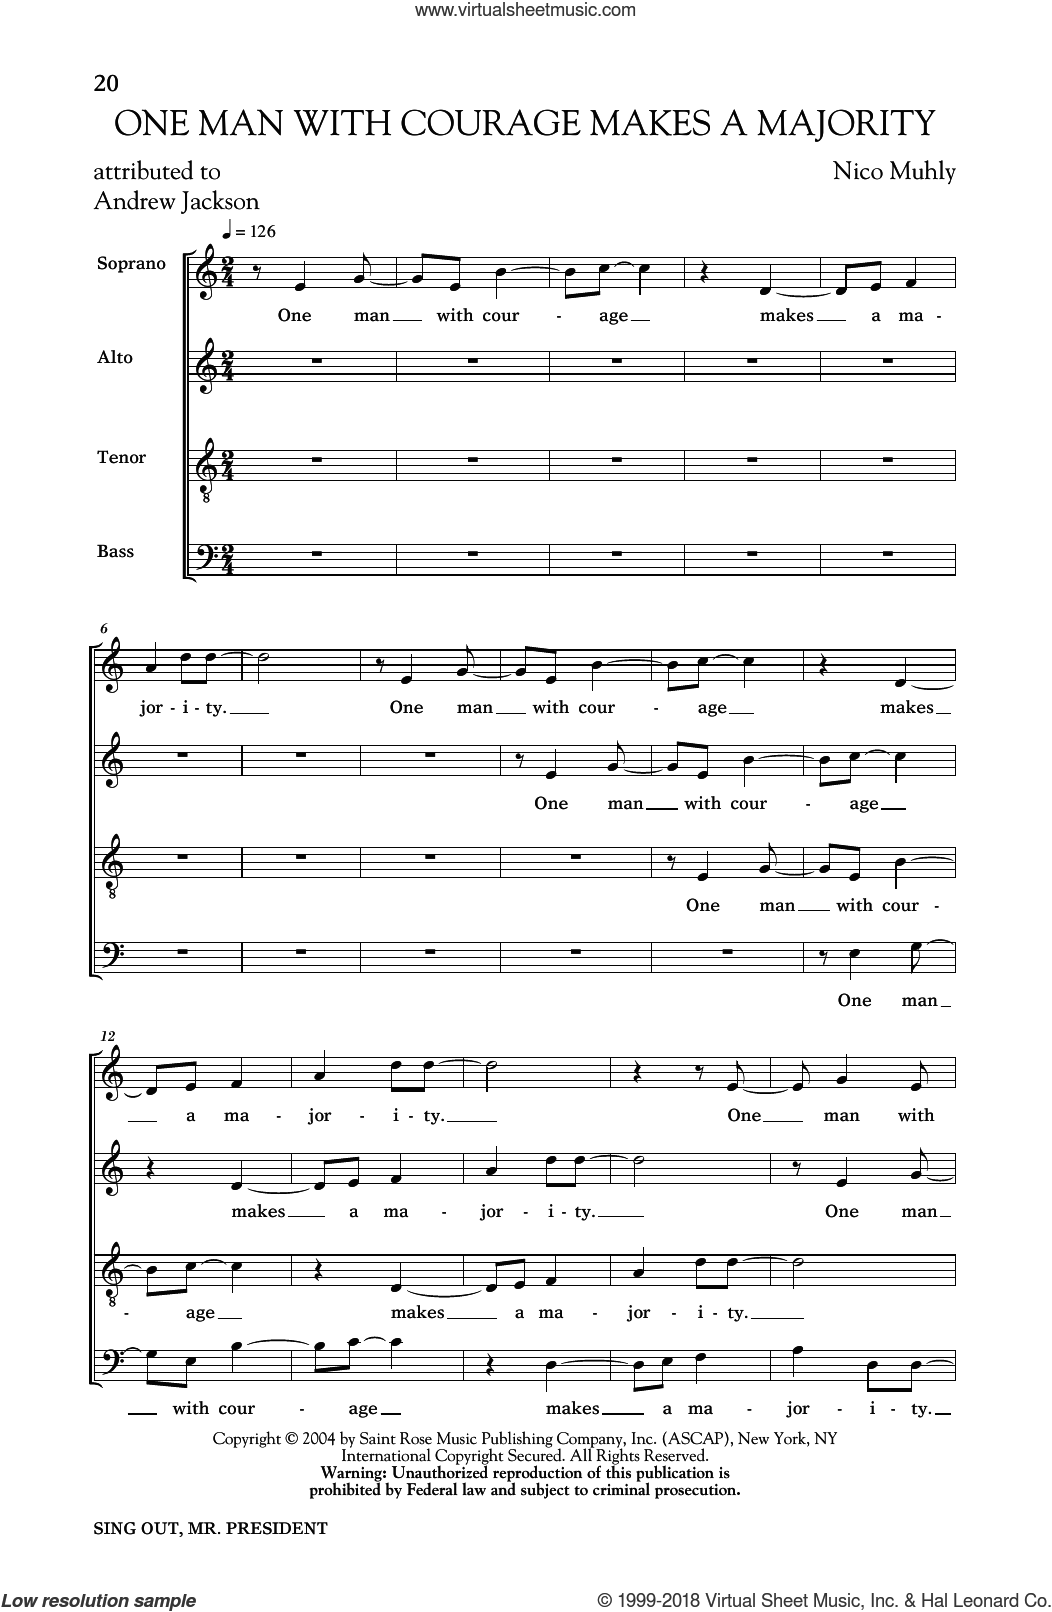 One Man With Courage Makes A Majority sheet music for choir by Nico Muhly and Andrew Jackson, intermediate skill level